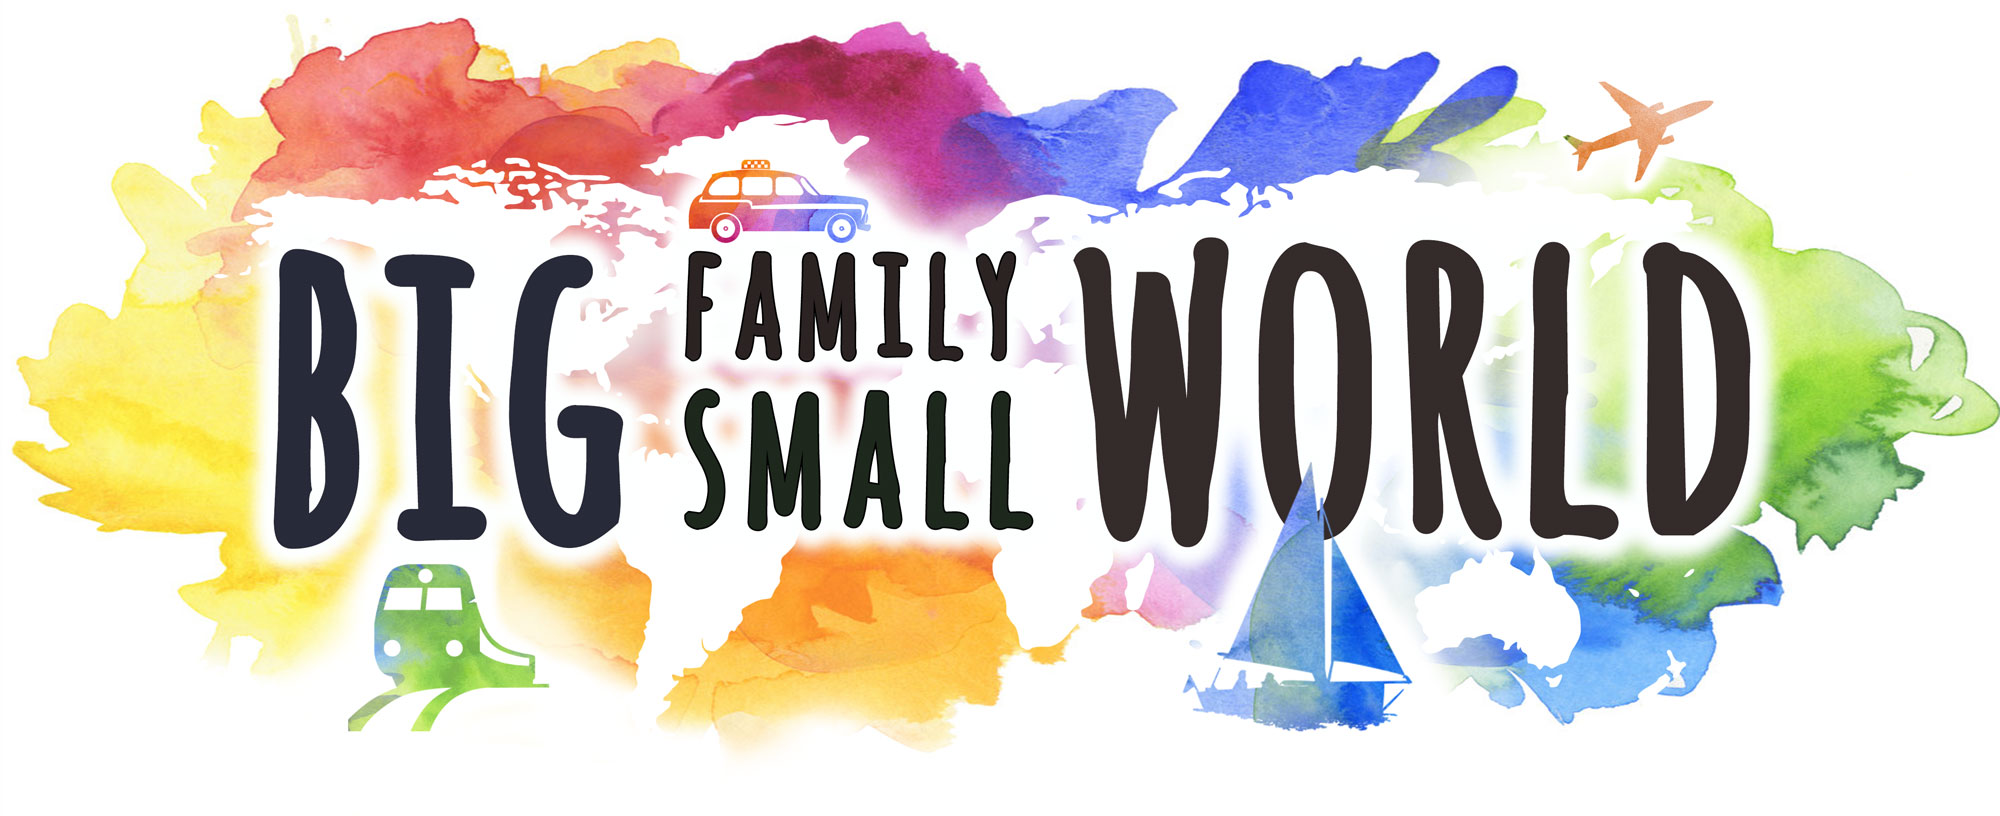 Big Family Small World